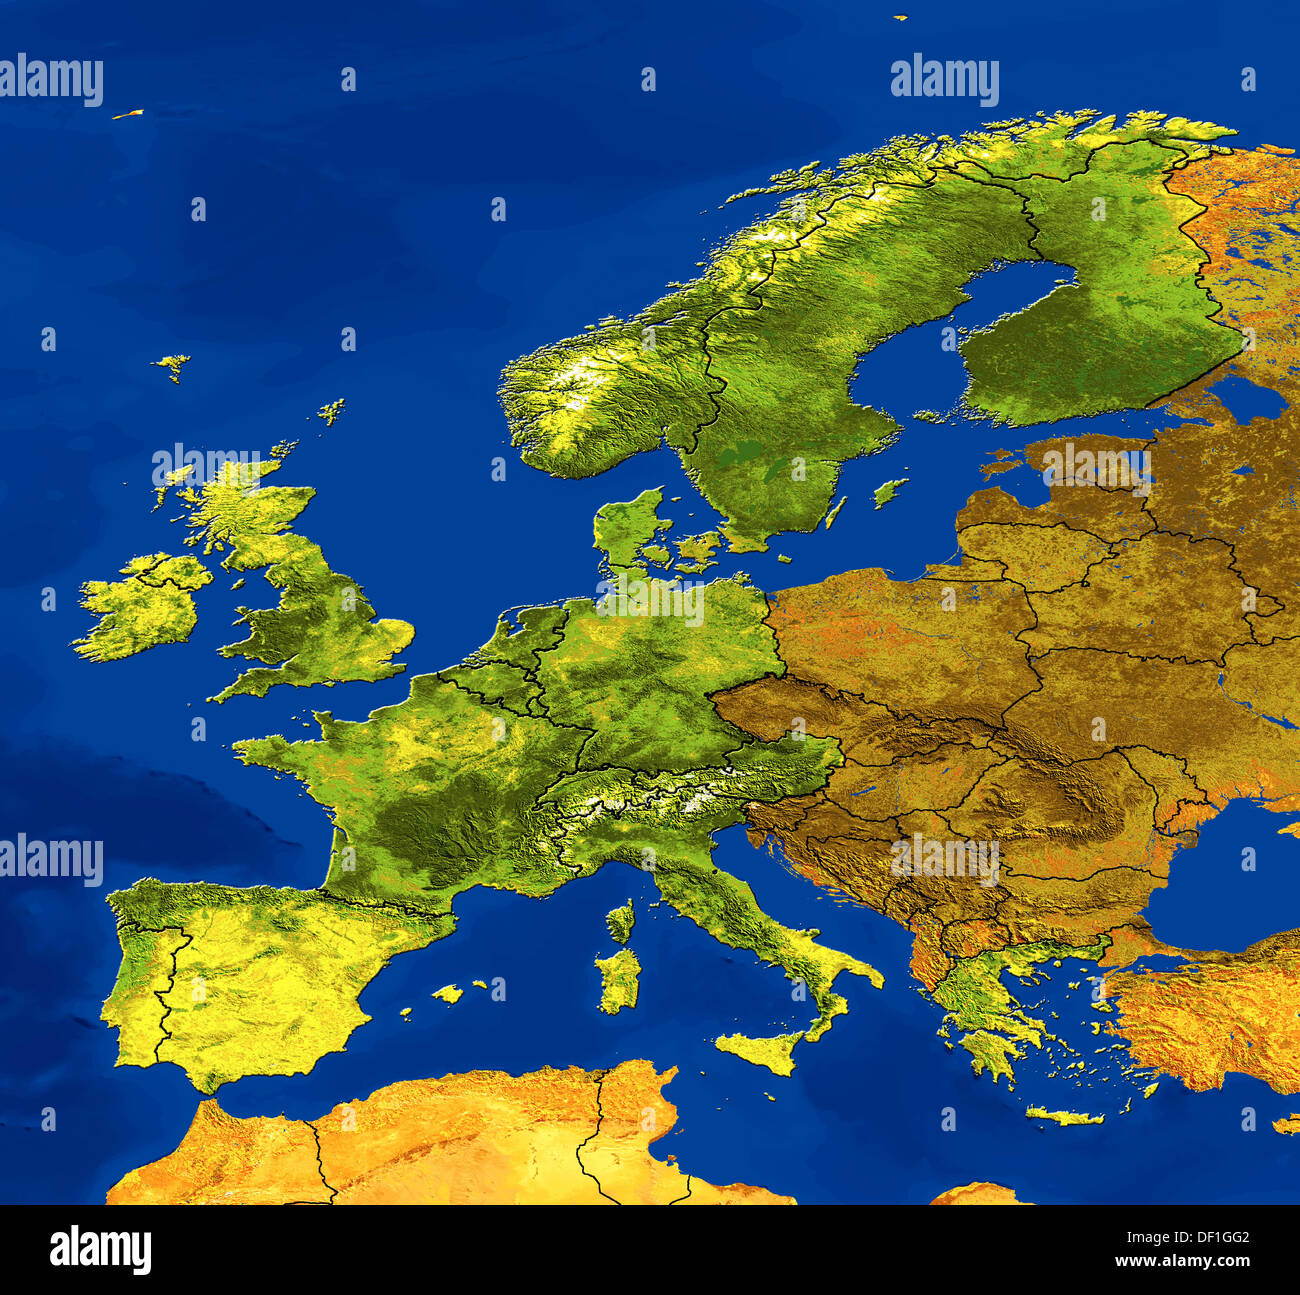 Satellite Image Map Of Europe Showing Borders And Topographic - Europe satellite map